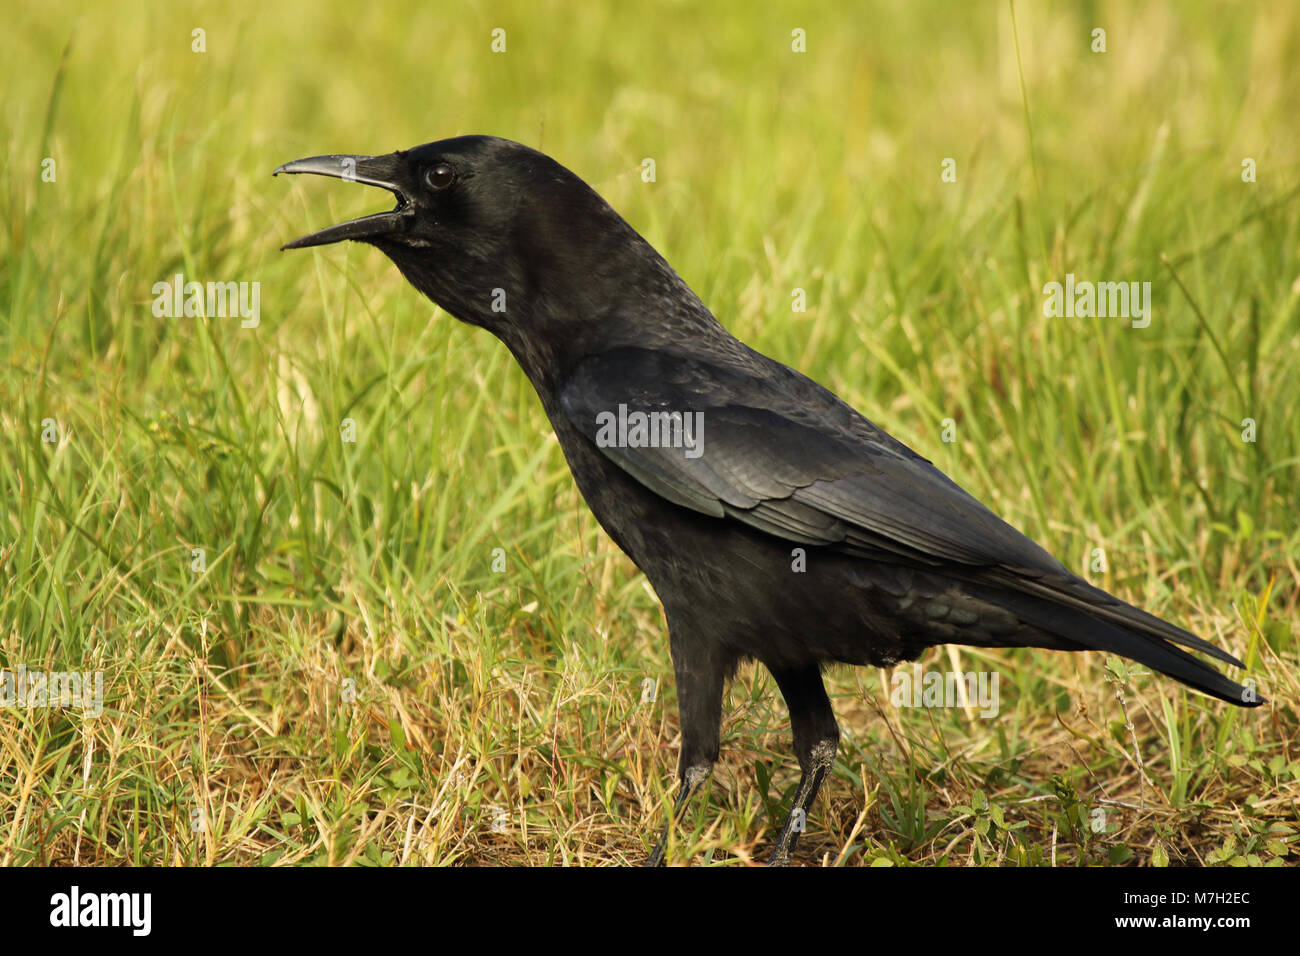 An American Crow calling loudly. - Stock Image